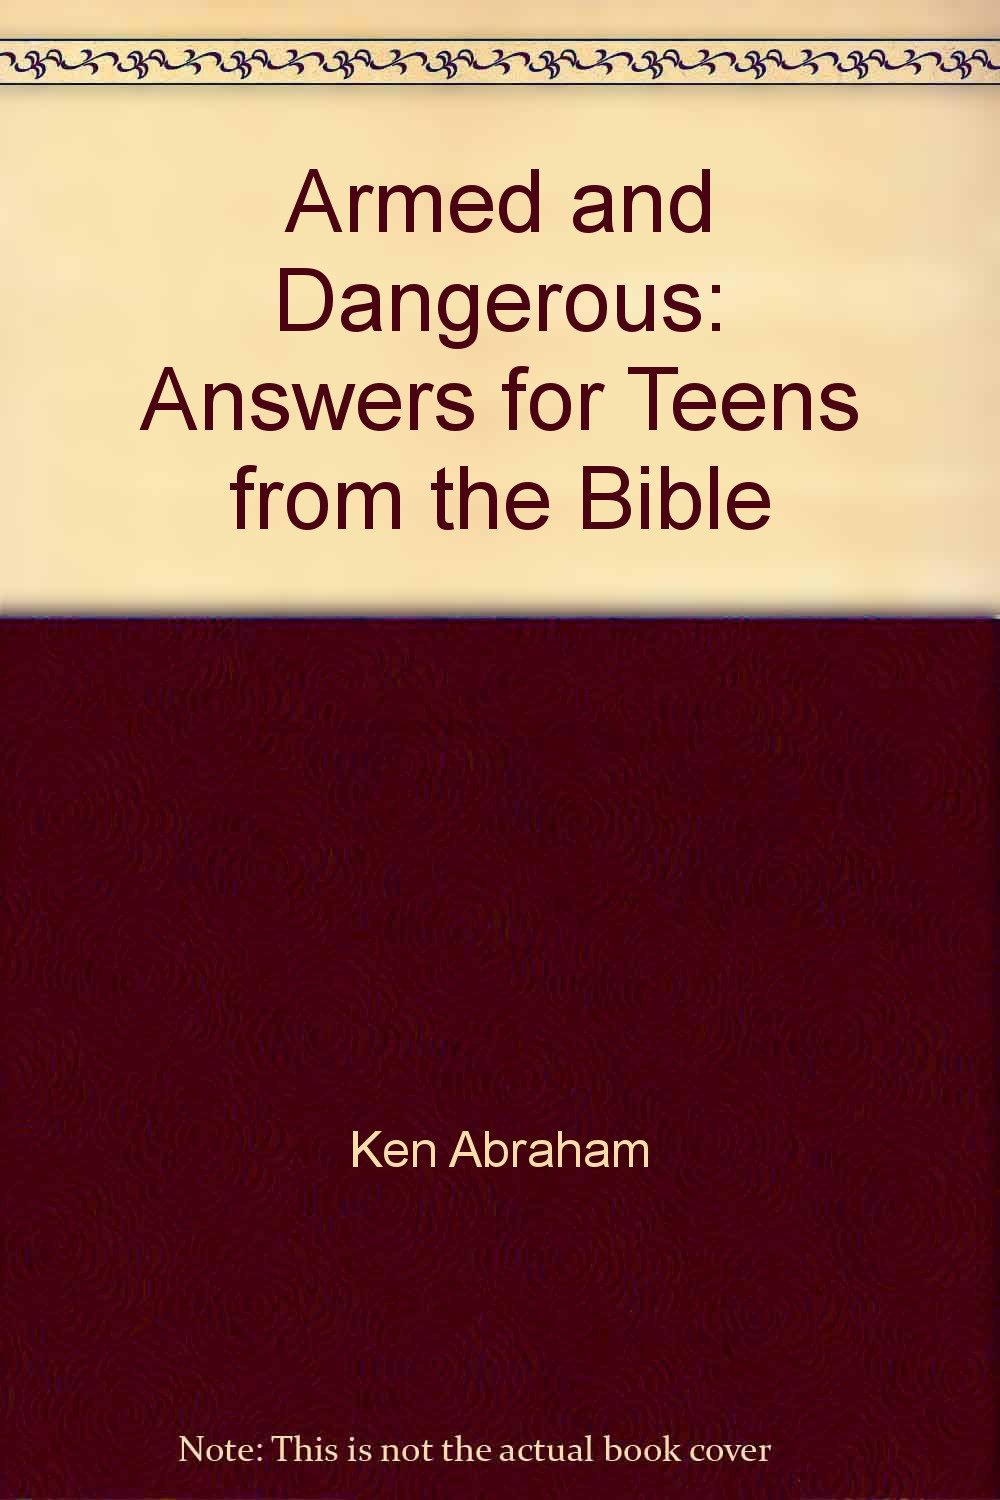 Armed and Dangerous: Answers for Teens from the Bible!: Ken Abraham:  9781557482426: Amazon.com: Books